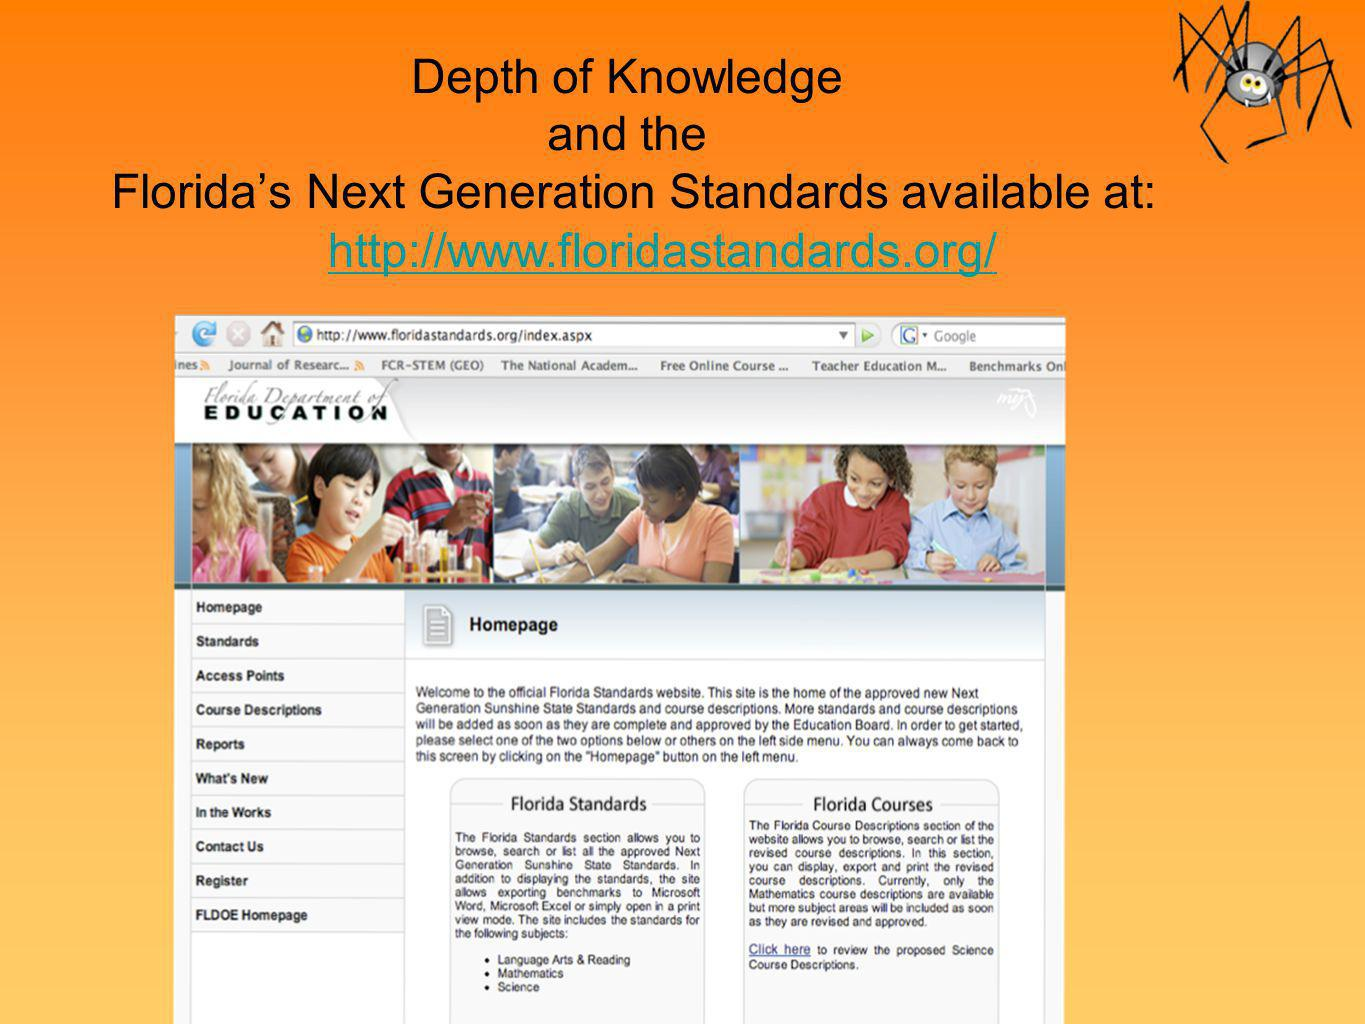 Depth of Knowledge and the Florida's Next Generation Standards available at: